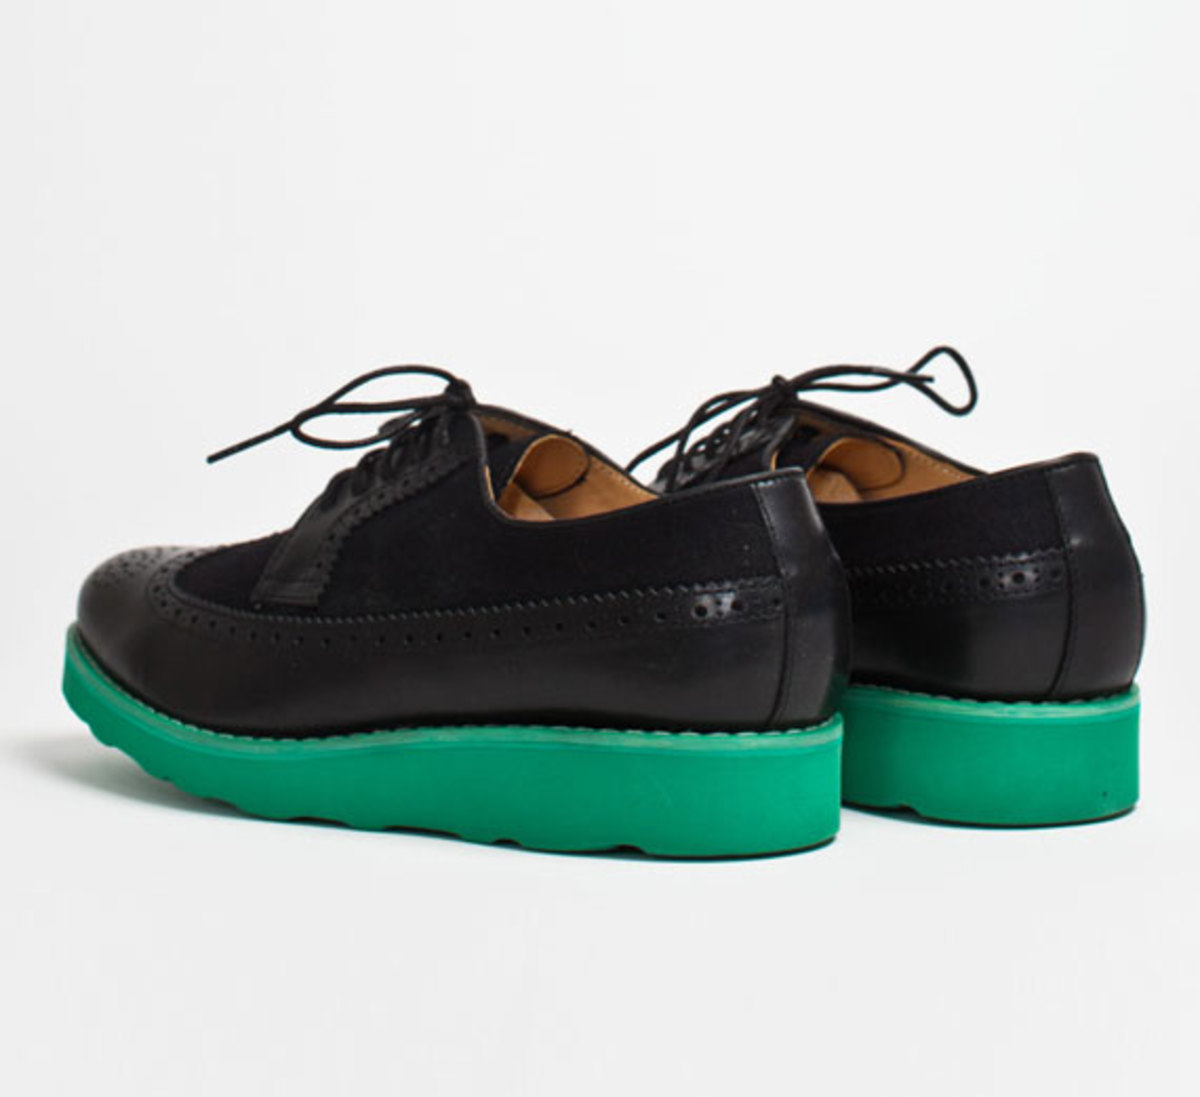 comme-des-garcons-shirt-the-generic-man-fall-2012-footwear-collection-18